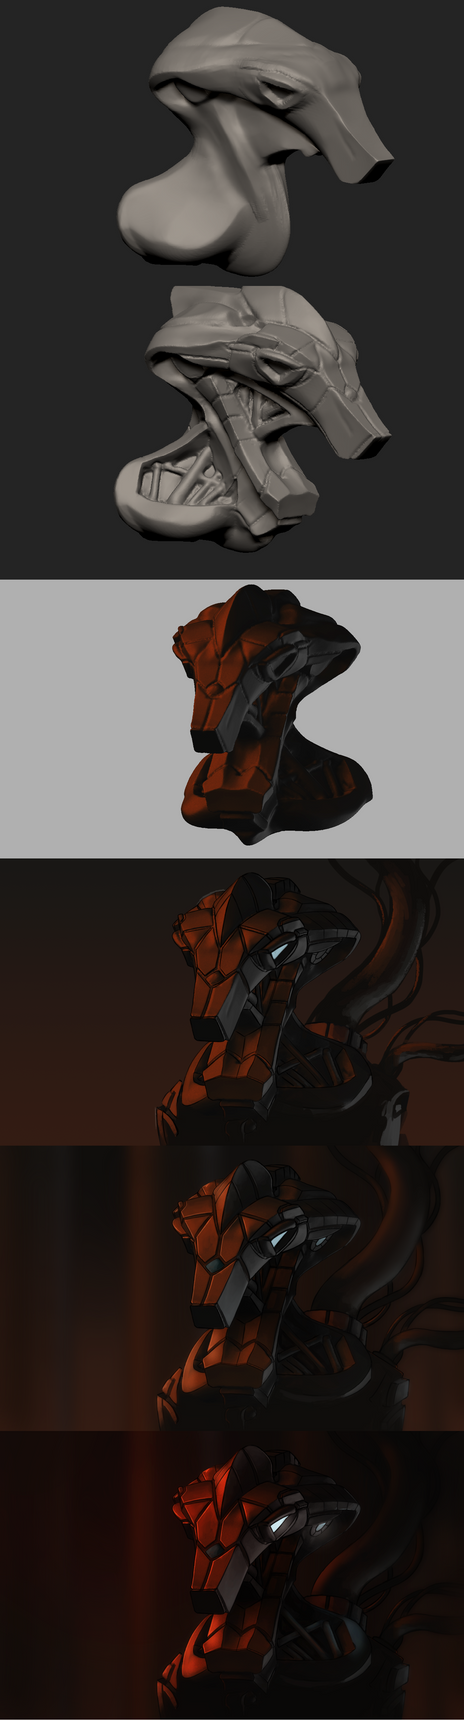 Robot thingie step by step by TheMoub